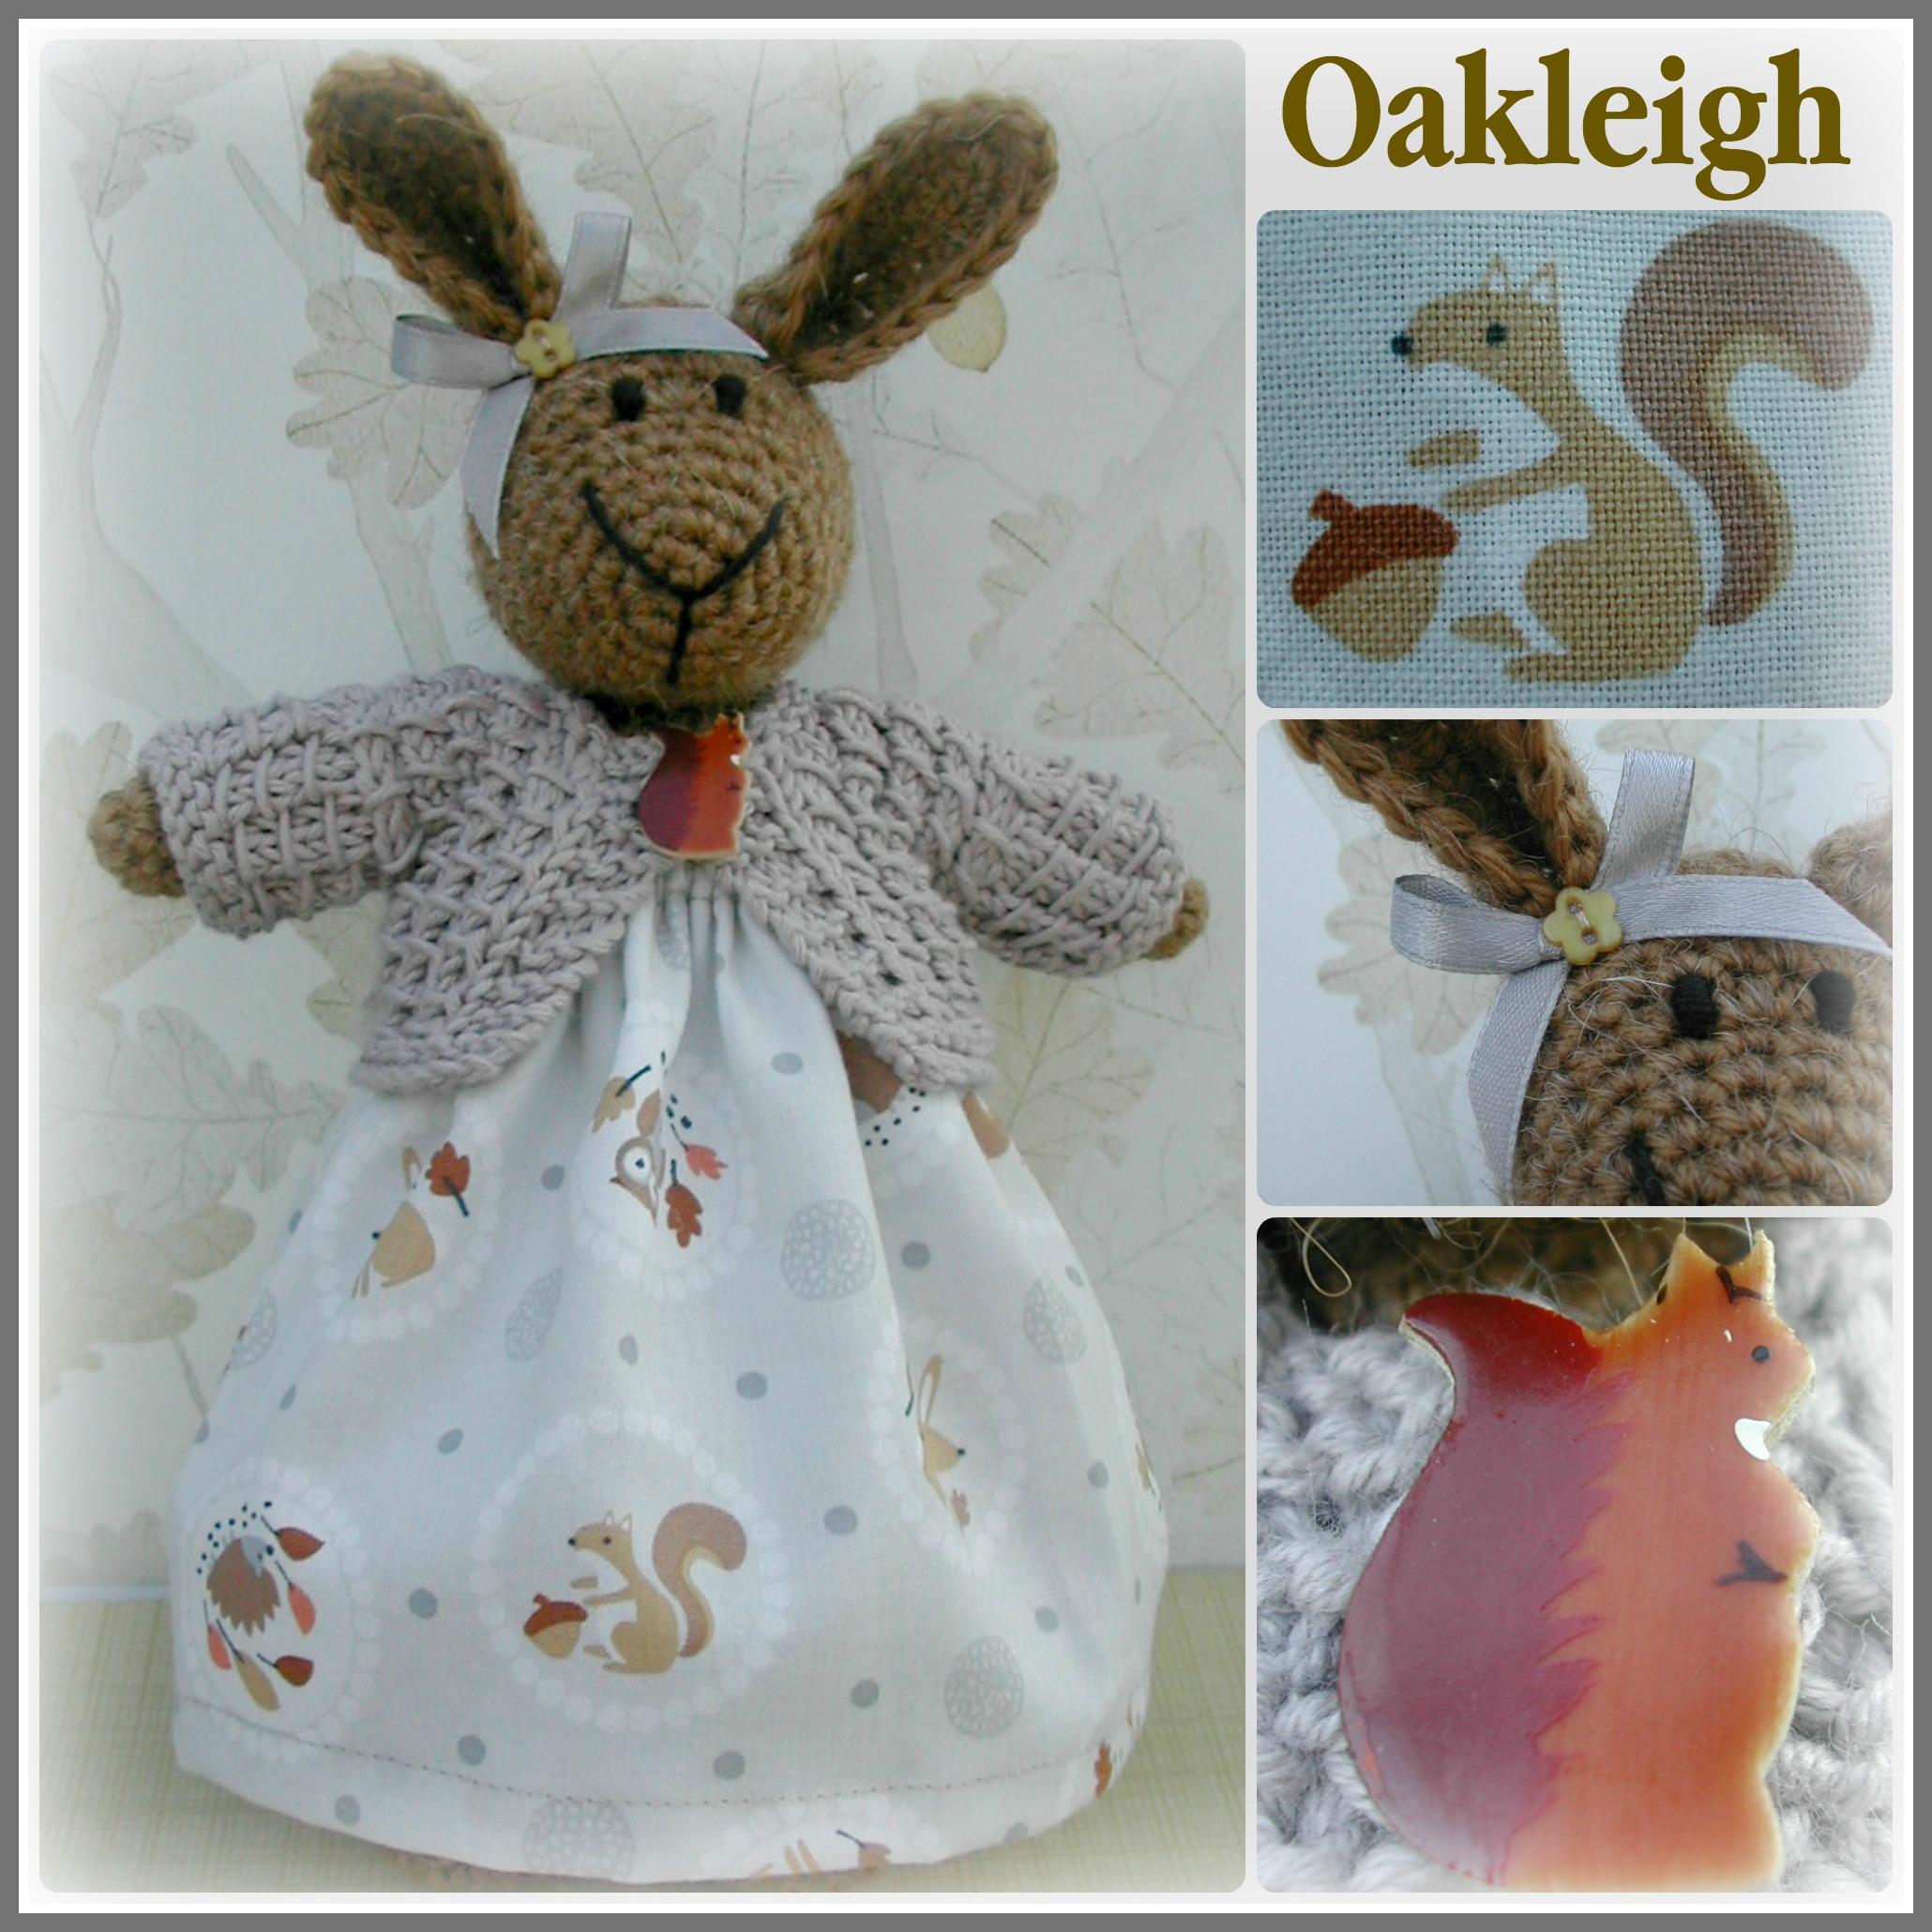 oakleigh-collage